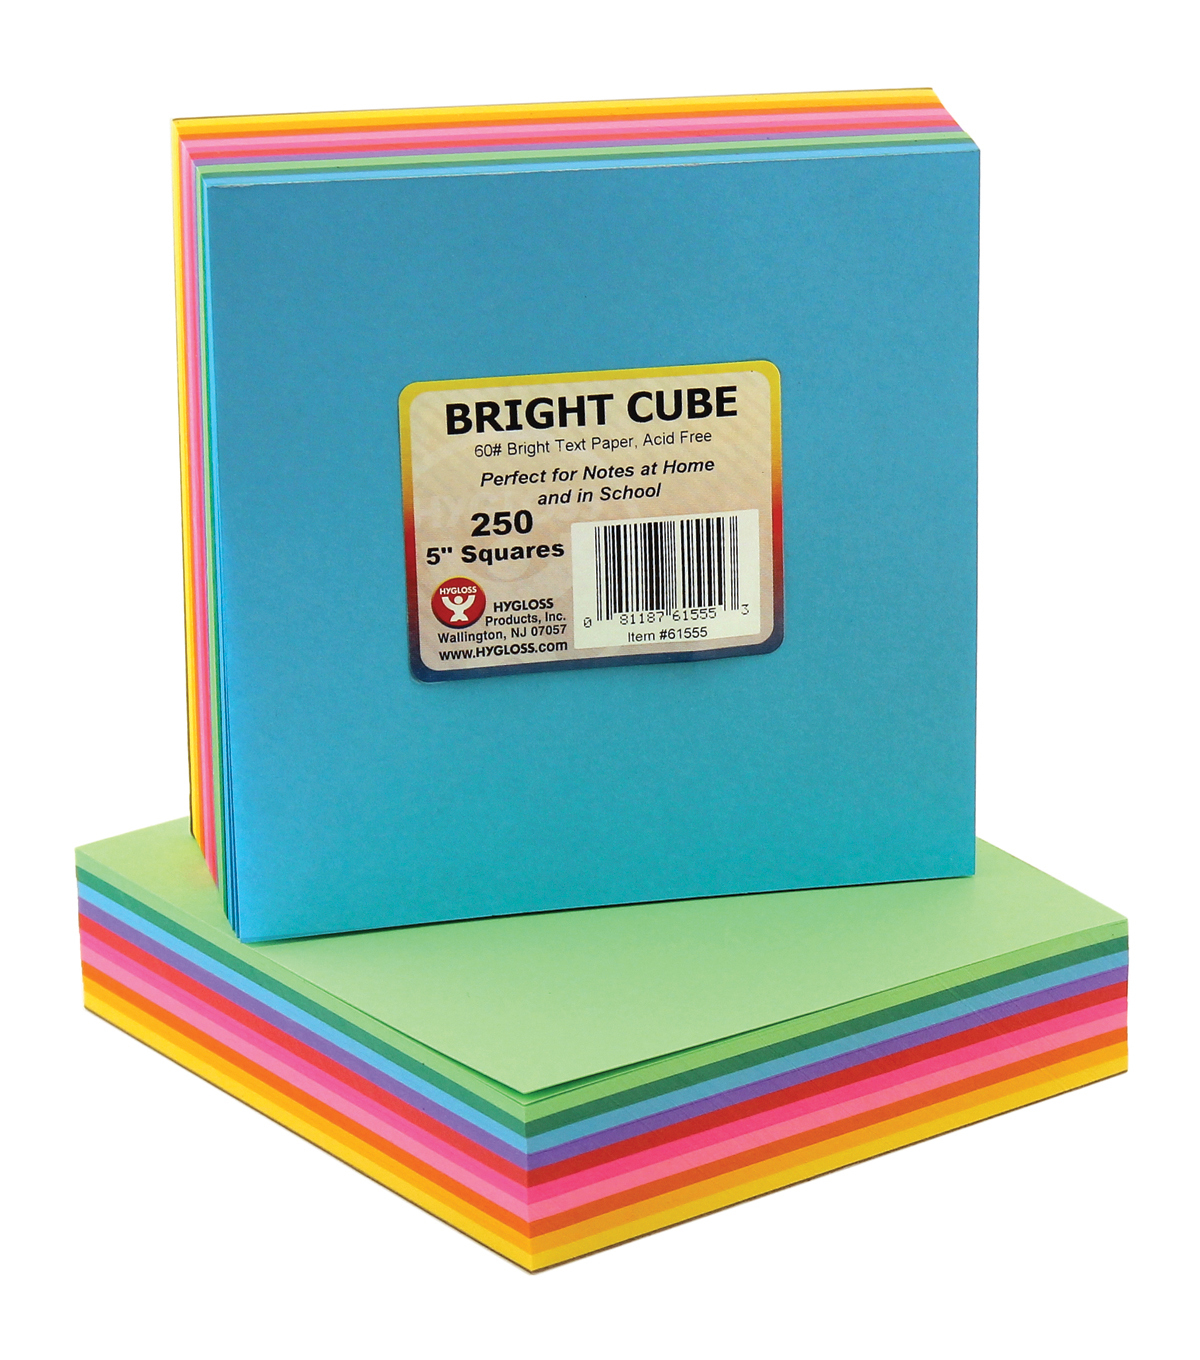 Mighty Bright Cube Paper Pad 5\u0022X5\u0022 250 Sheets/Cube-25 Sheets Each Of 10 Assorted Colors